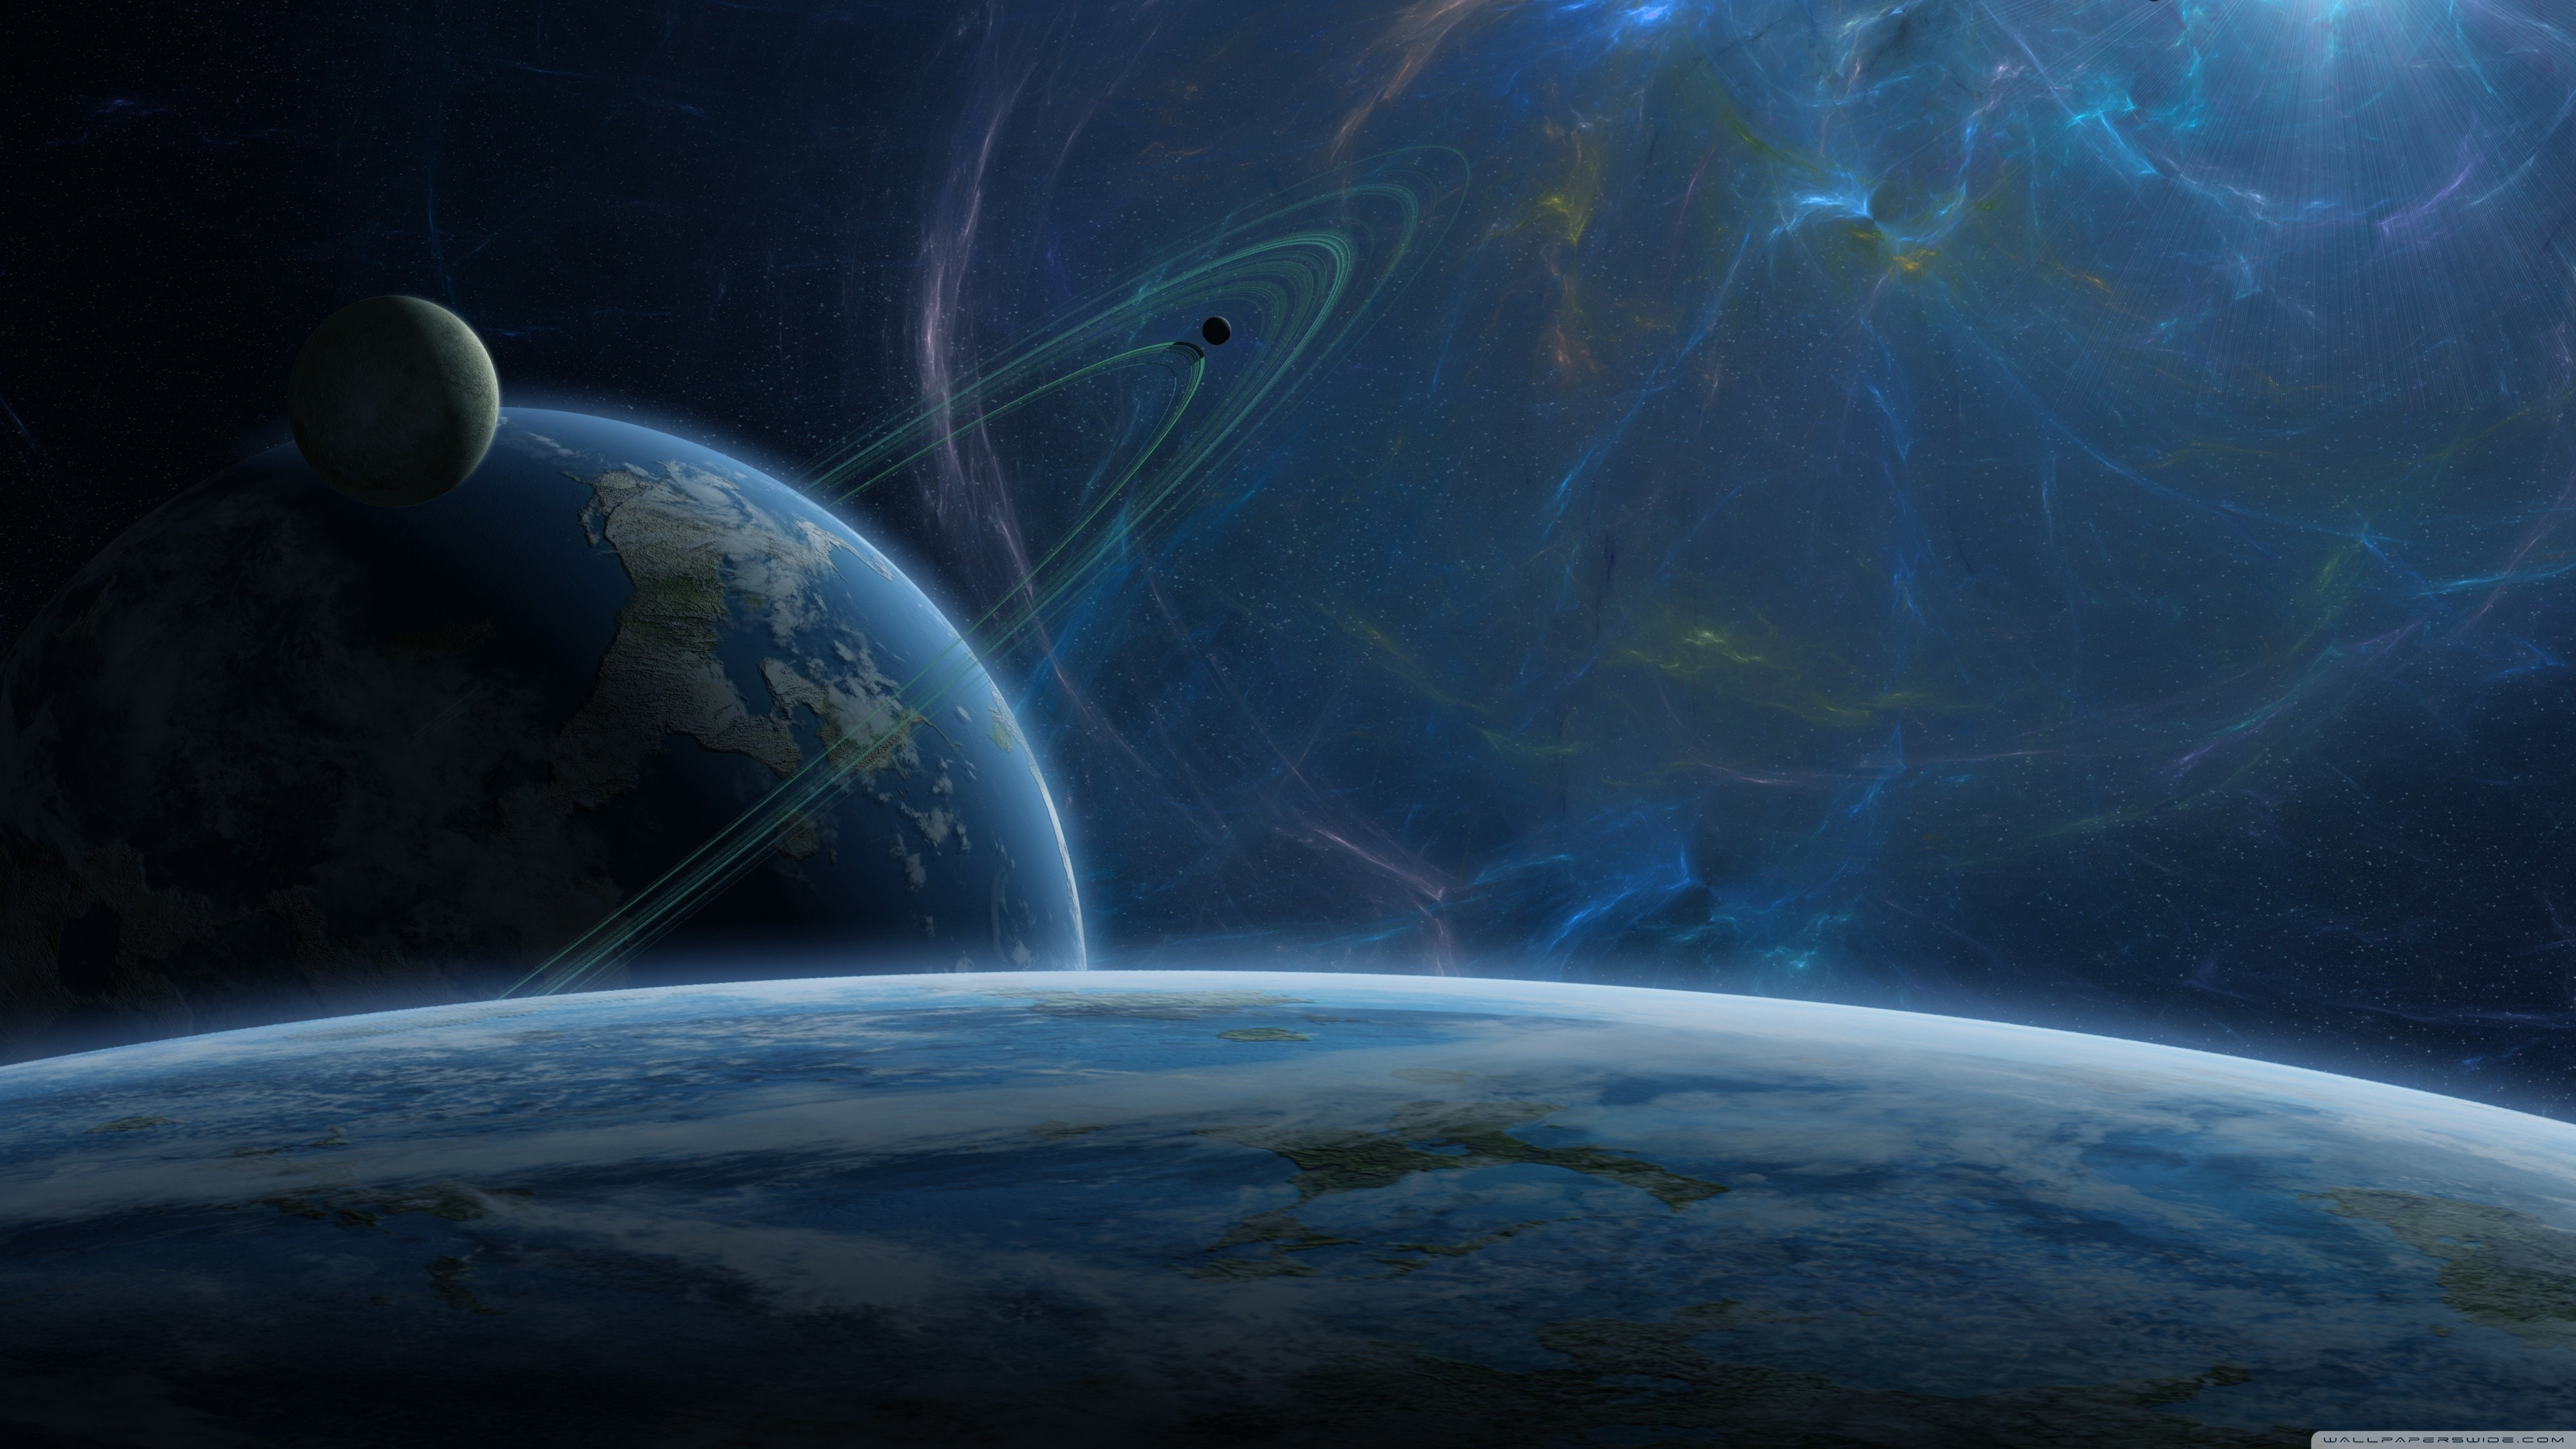 Image Detail For Fantasy Ipad Wallpaper: Fantasy Space Wallpapers (71+ Images